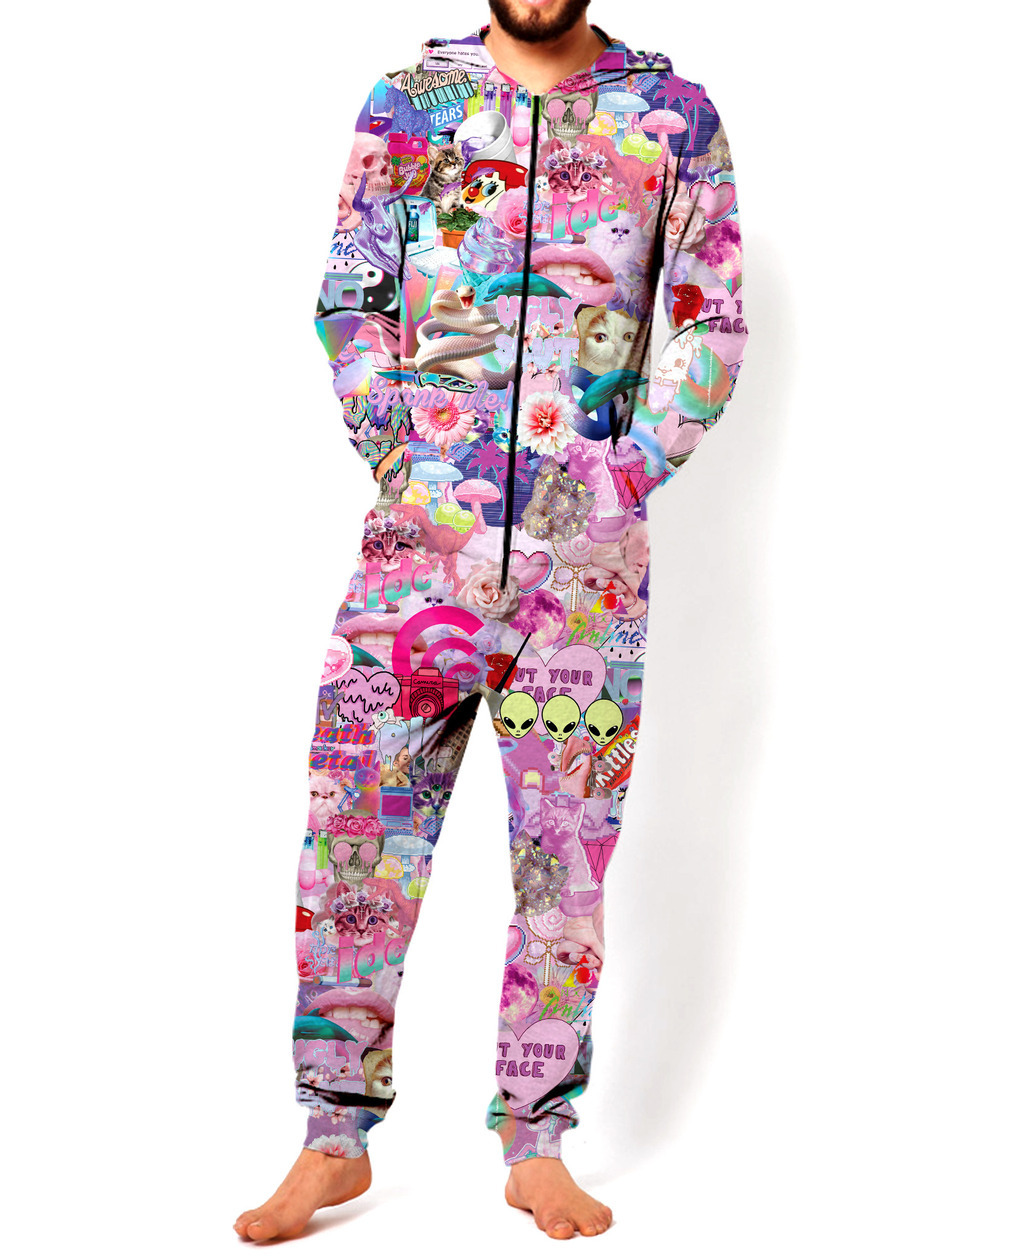 Men's Trendy Fashion Printed Jumpsuit Sweatshirt Set